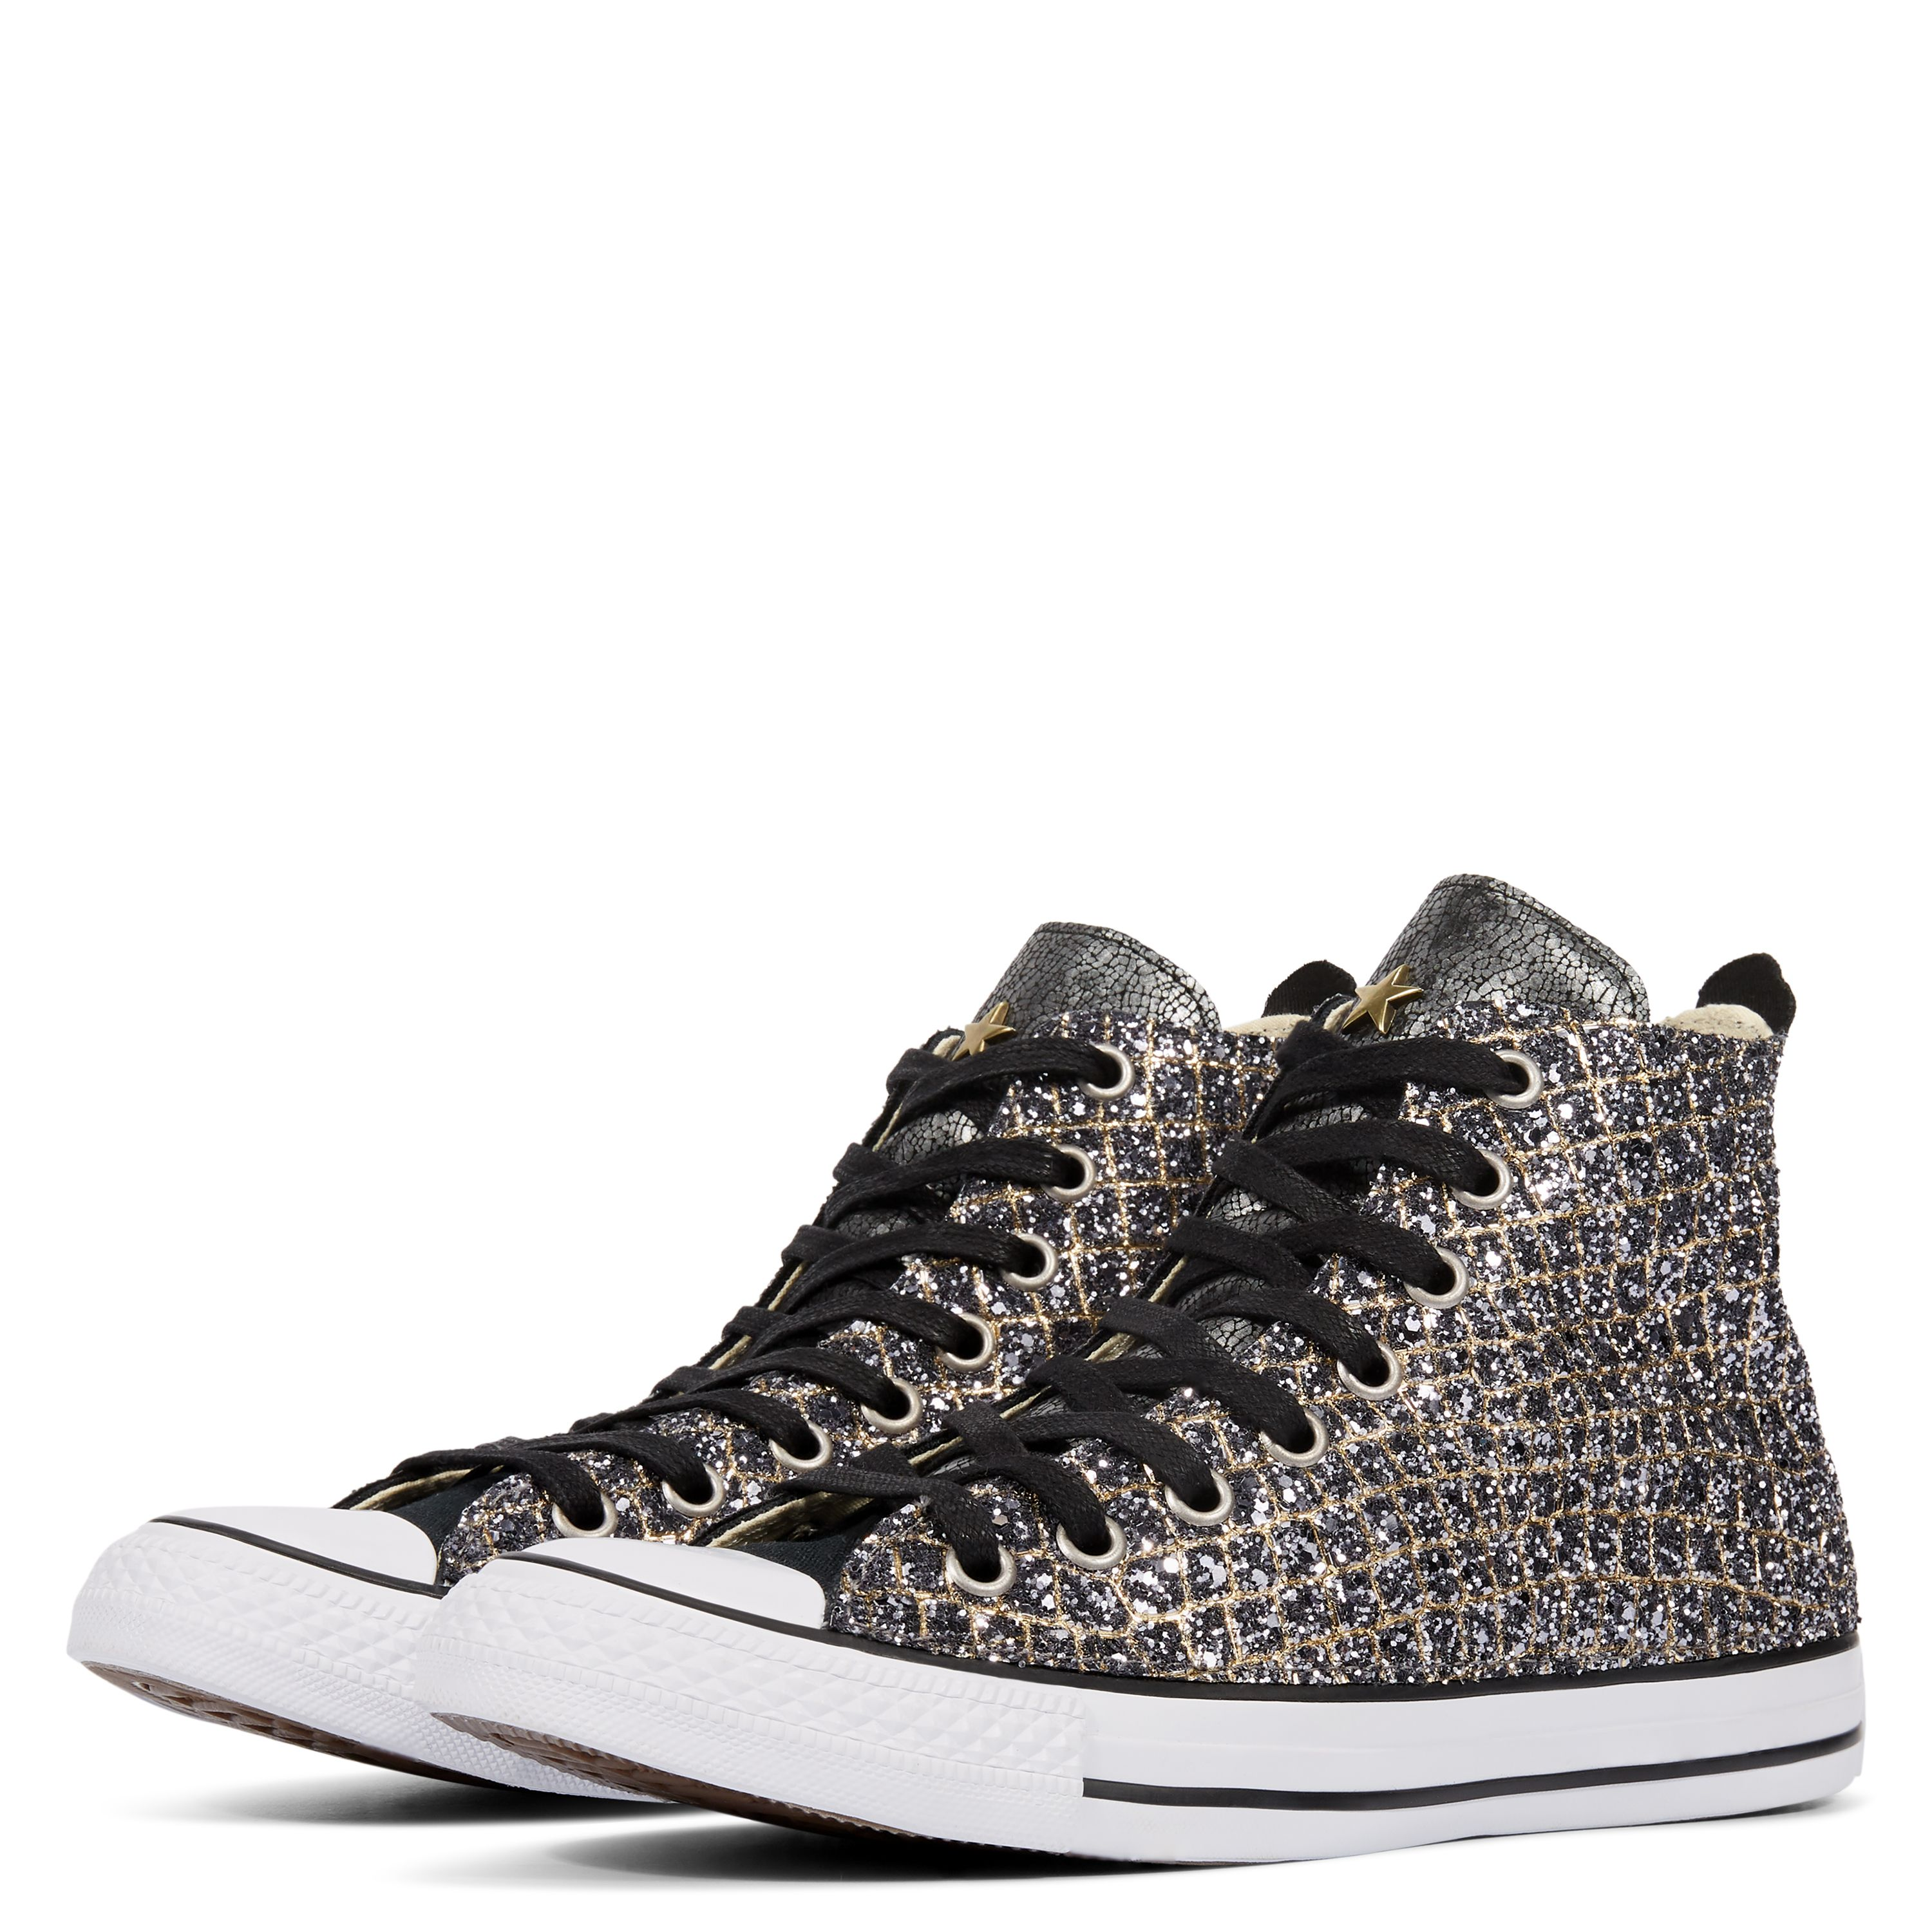 8e42a654731 Chuck Taylor All Star Camo Metal High Top Black Silver Gold Croco Glitte